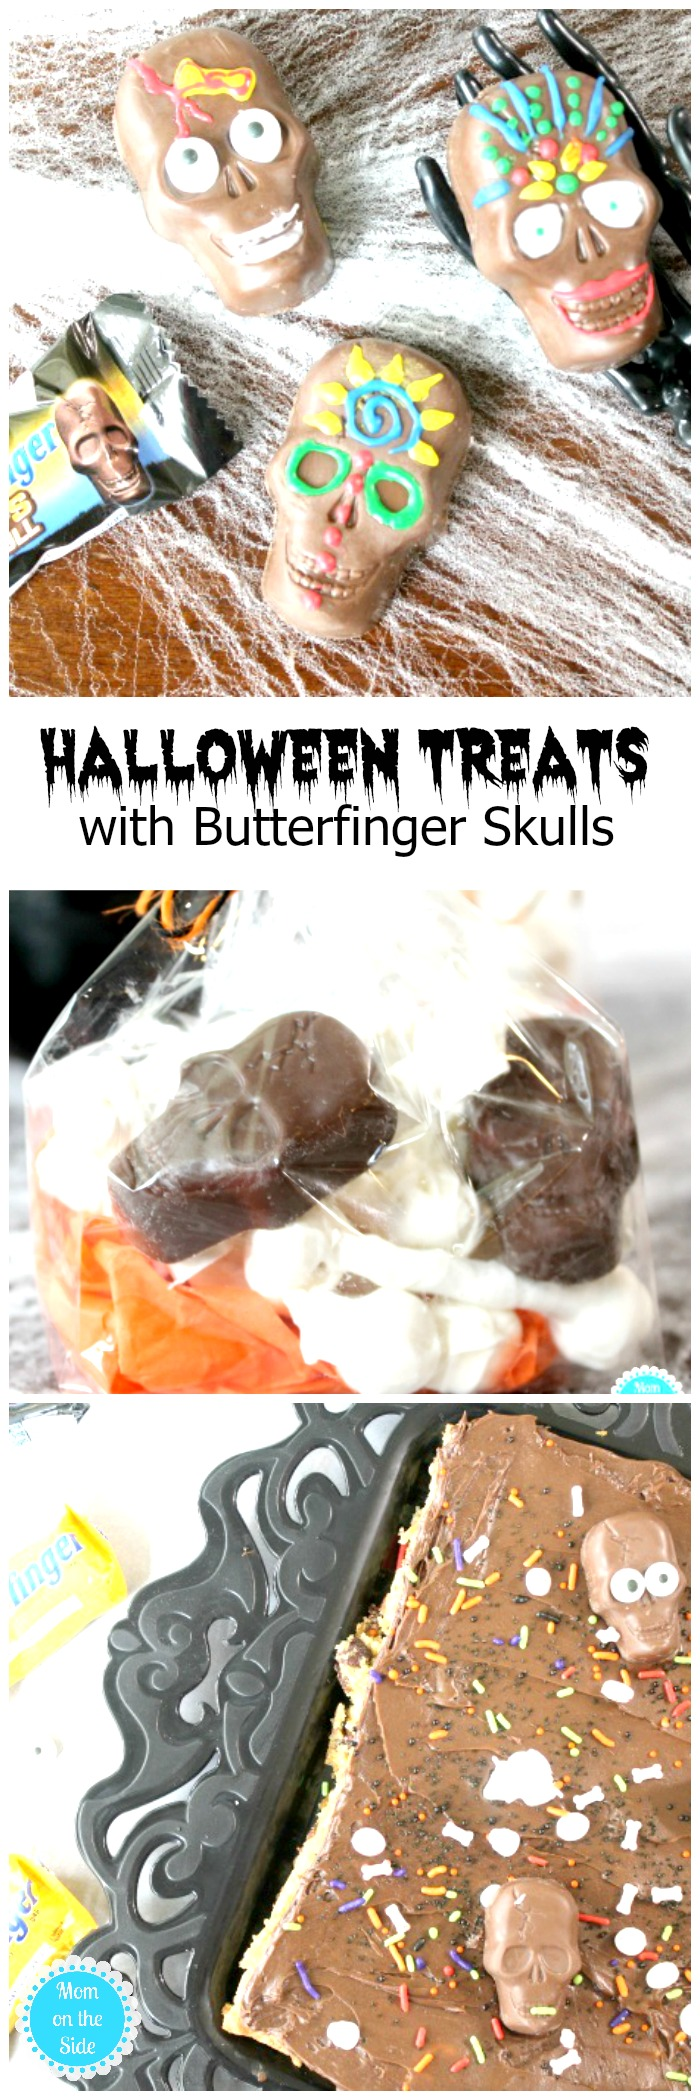 3 Easy Diy Storage Ideas For Small Kitchen: 3 Easy Halloween Treats With Butterfinger Skulls